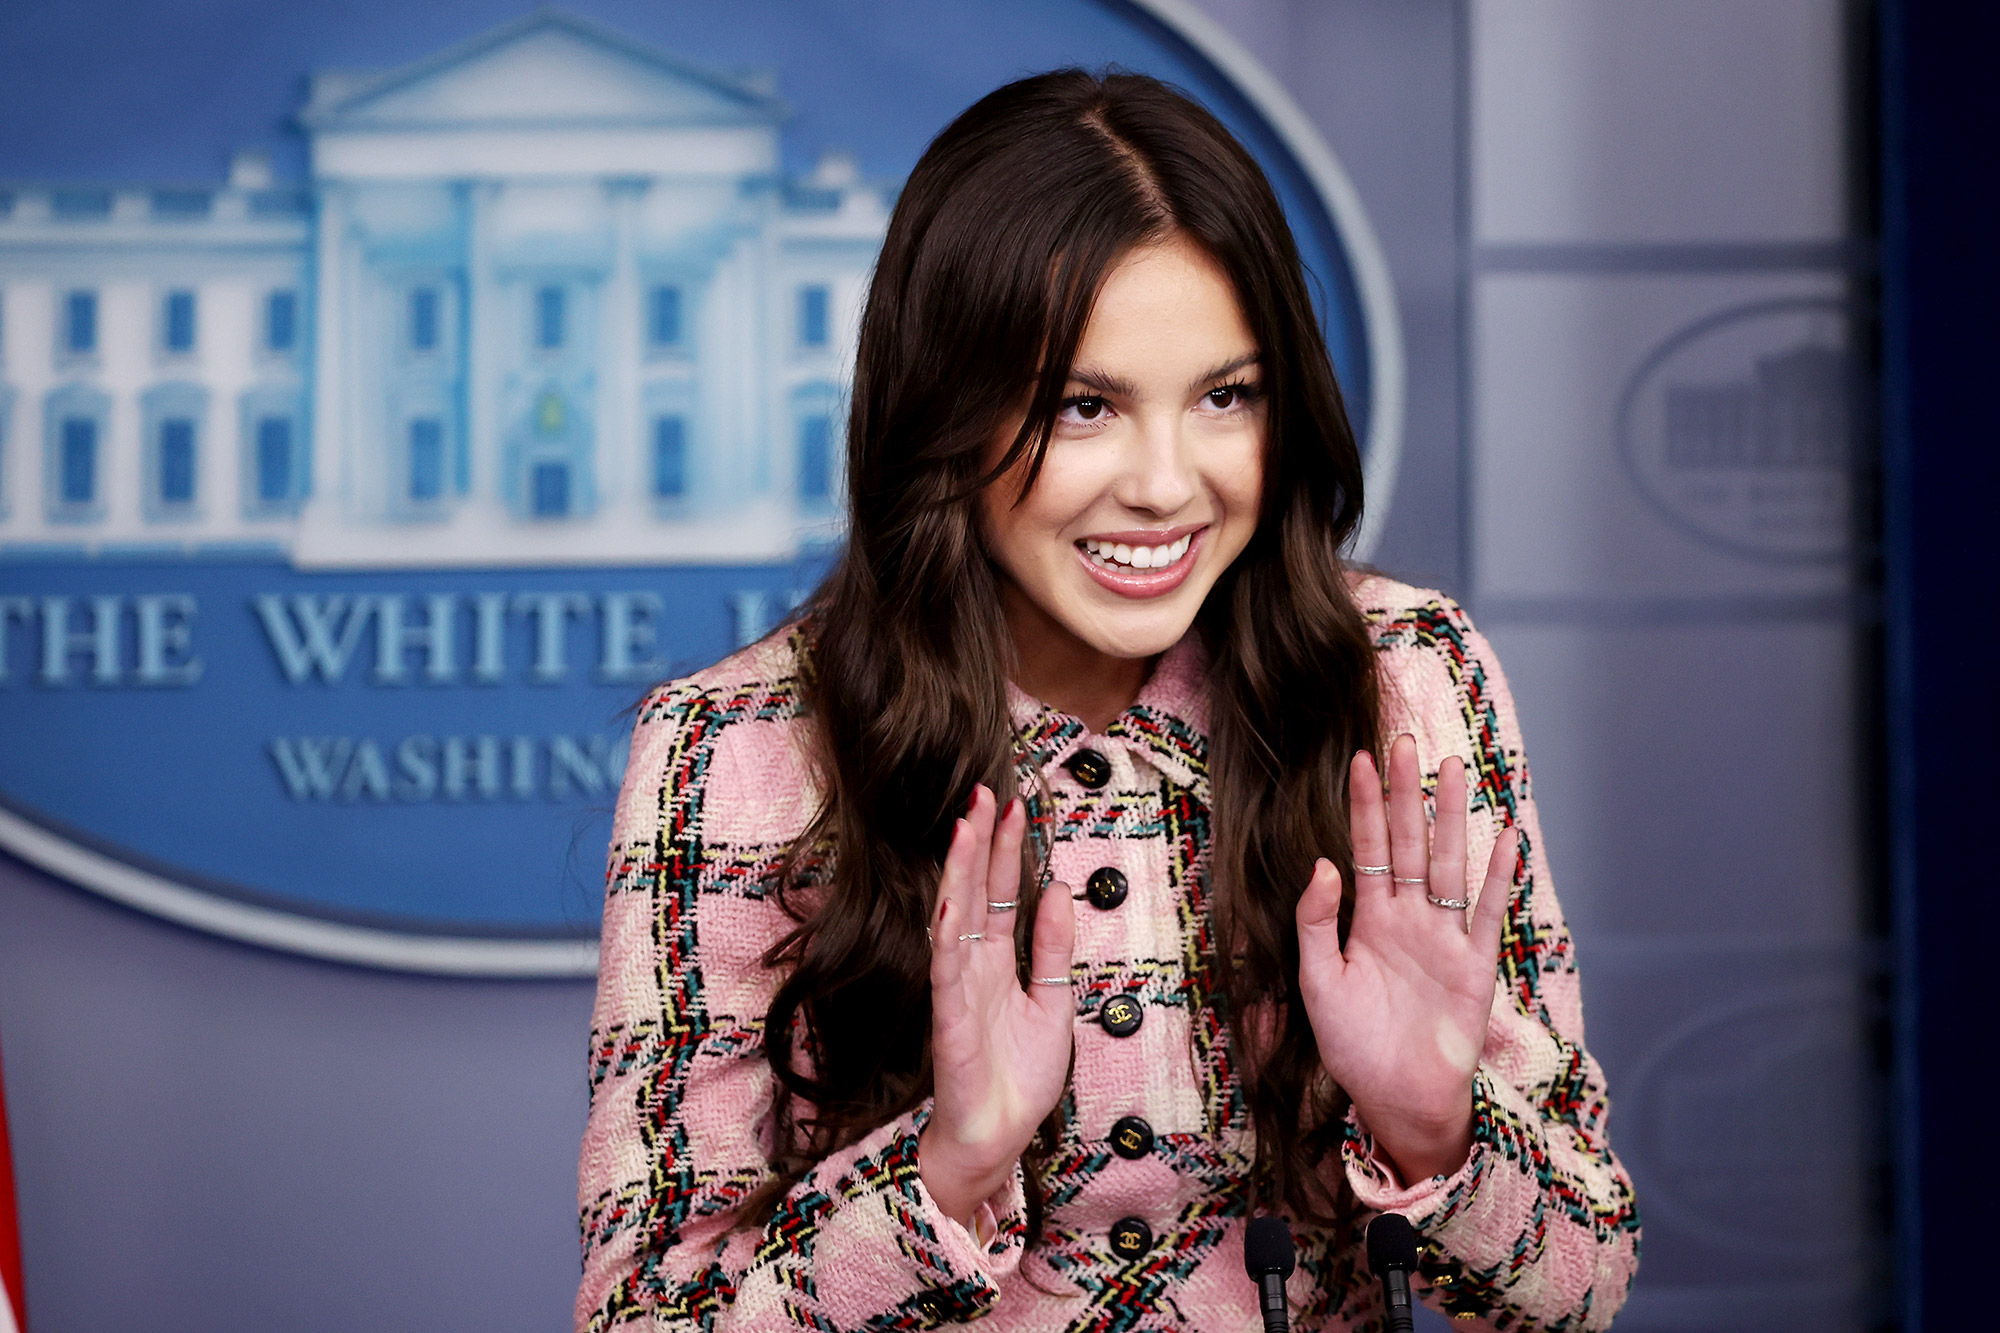 Pop music star and Disney actress Olivia Rodrigo makes a brief statement to reporters at the beginning of the daily news conference in the Brady Press Briefing Room at the White House on July 14, 2021 in Washington, DC